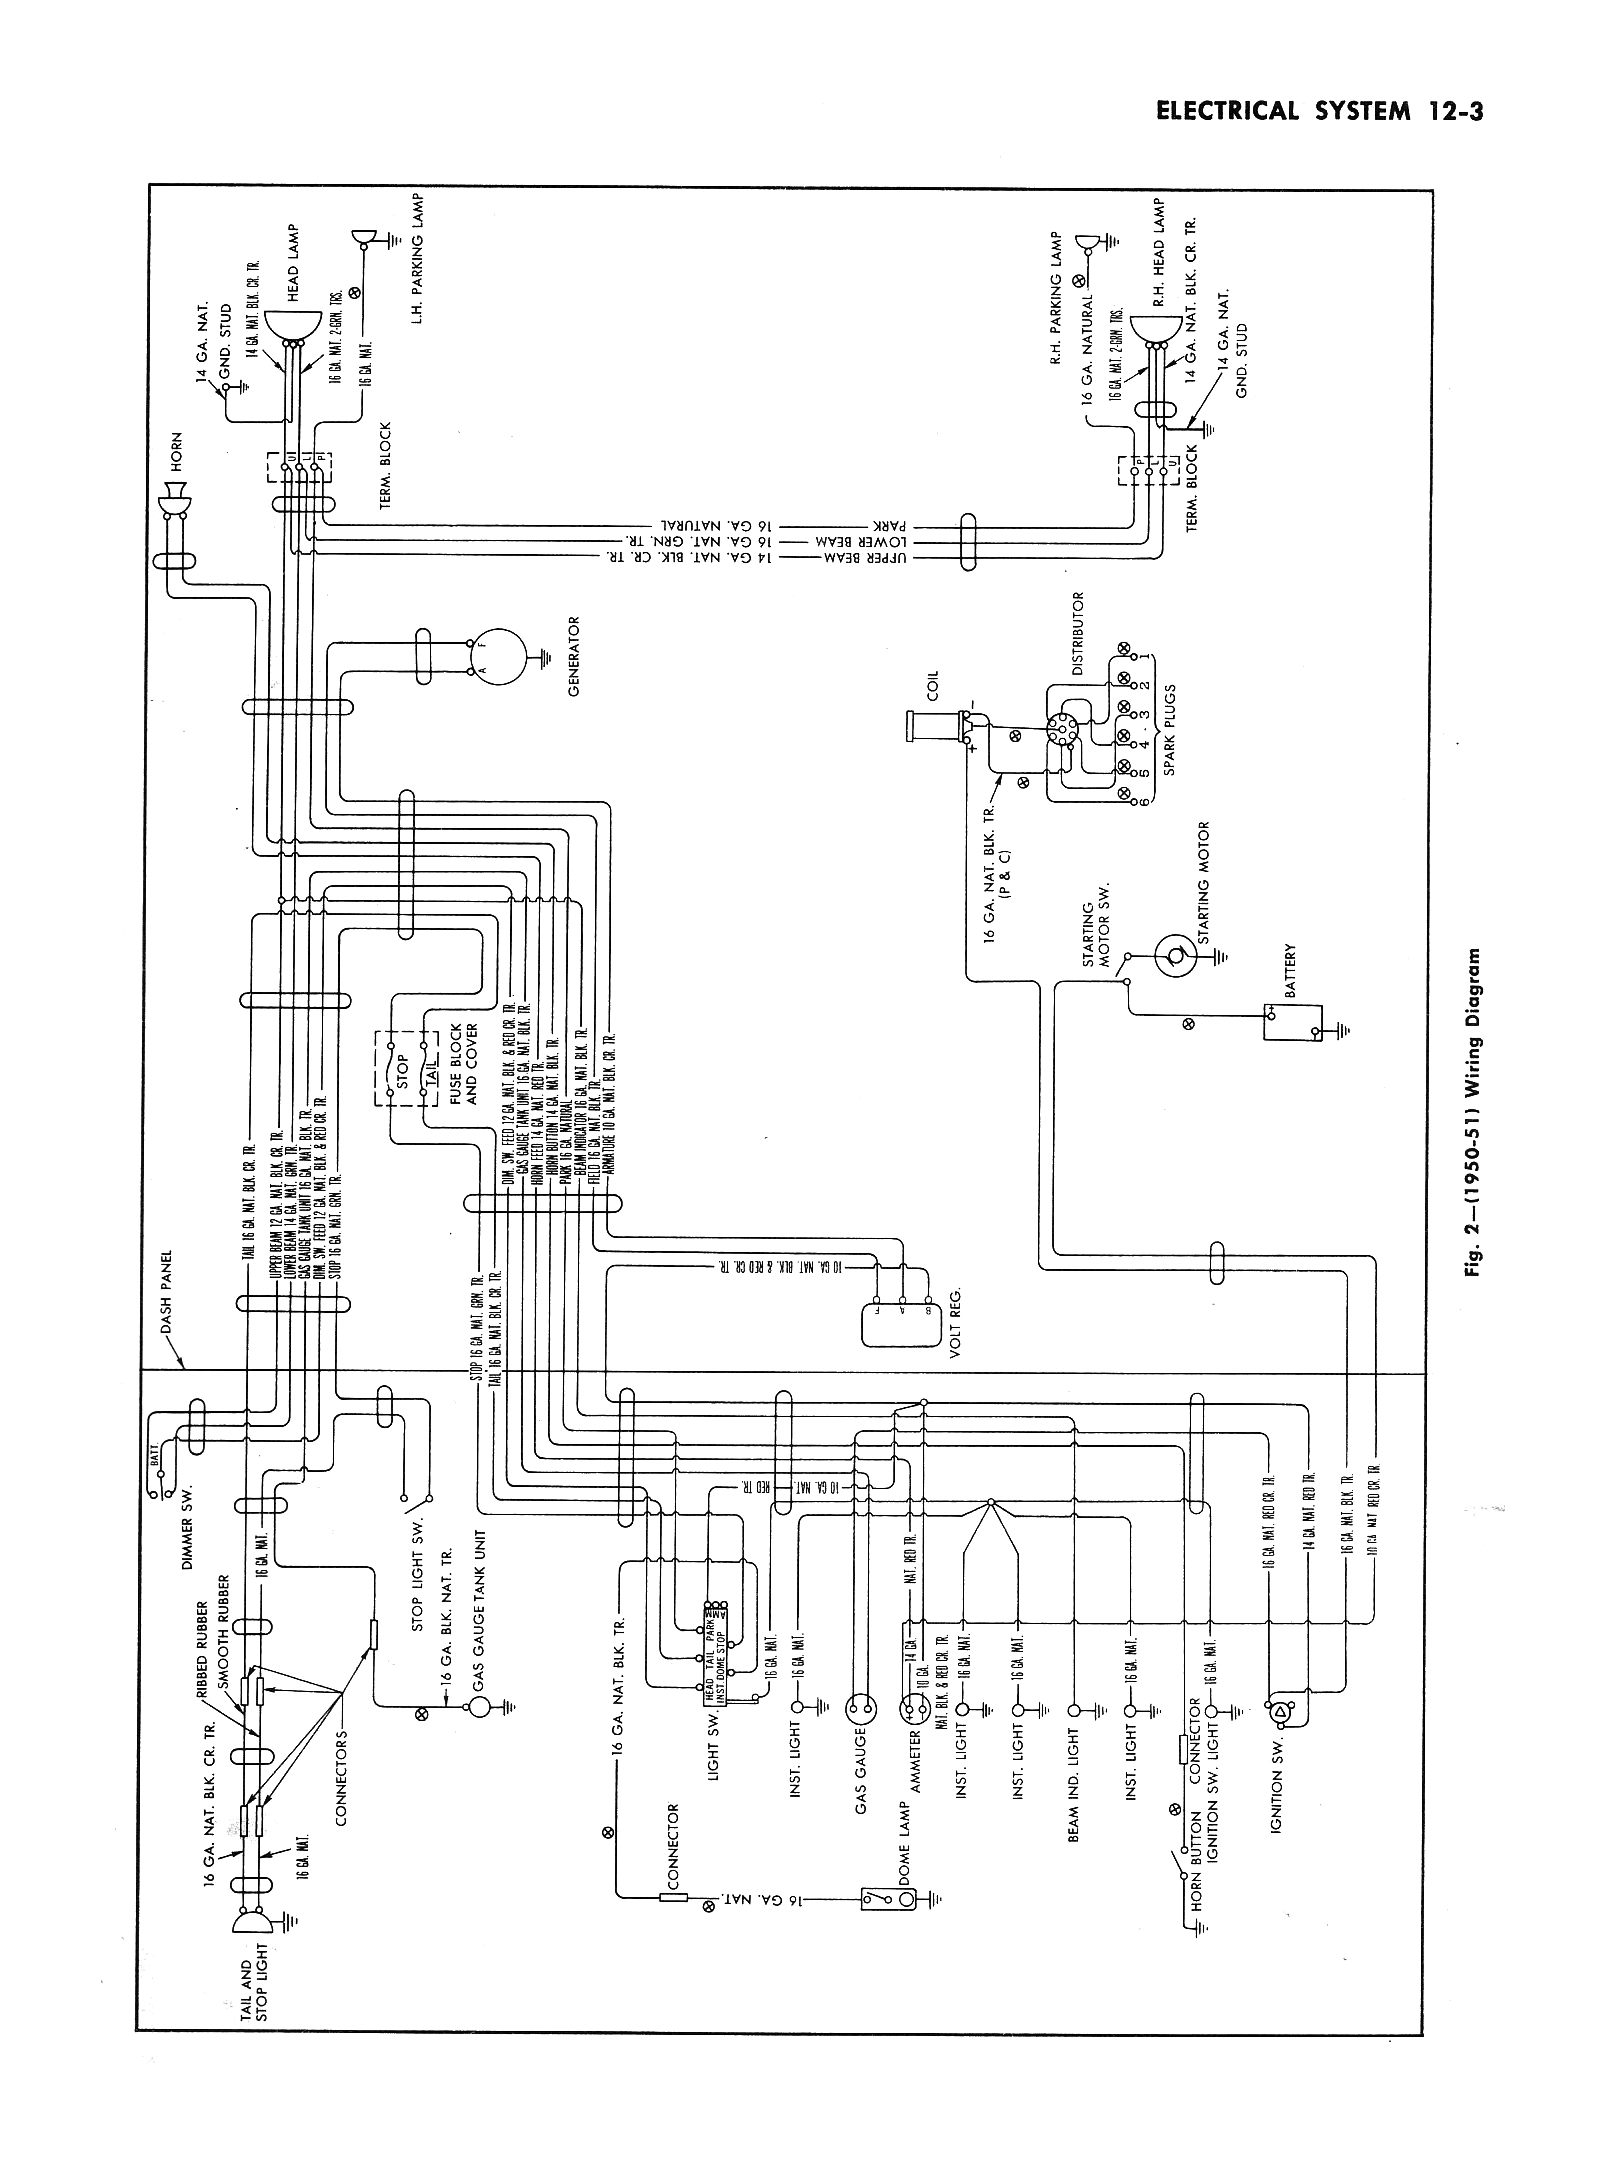 hight resolution of 1948 mercury wiring diagram wiring diagram blog 1950 mercury wiring diagram wiring diagram perfomance 1948 mercury